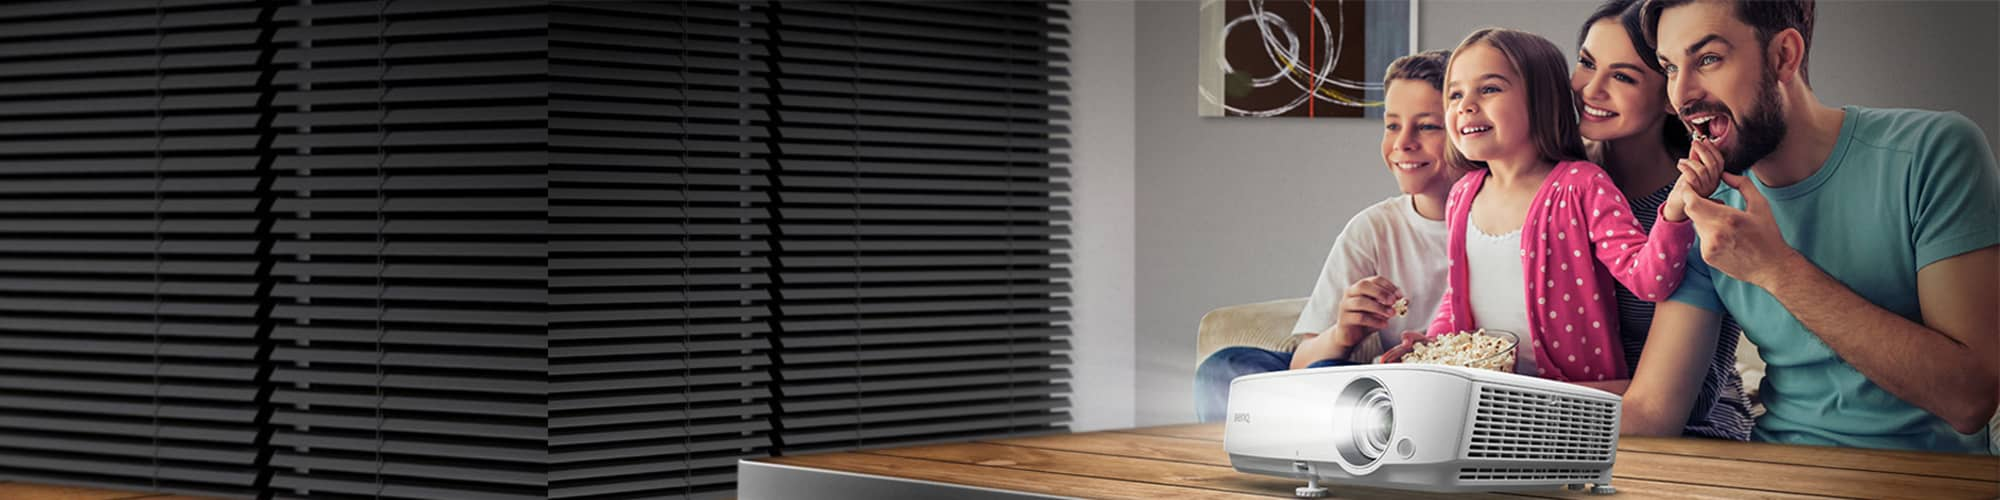 10 Best Projectors under $1000 Ultimate Buying Guide of 2019